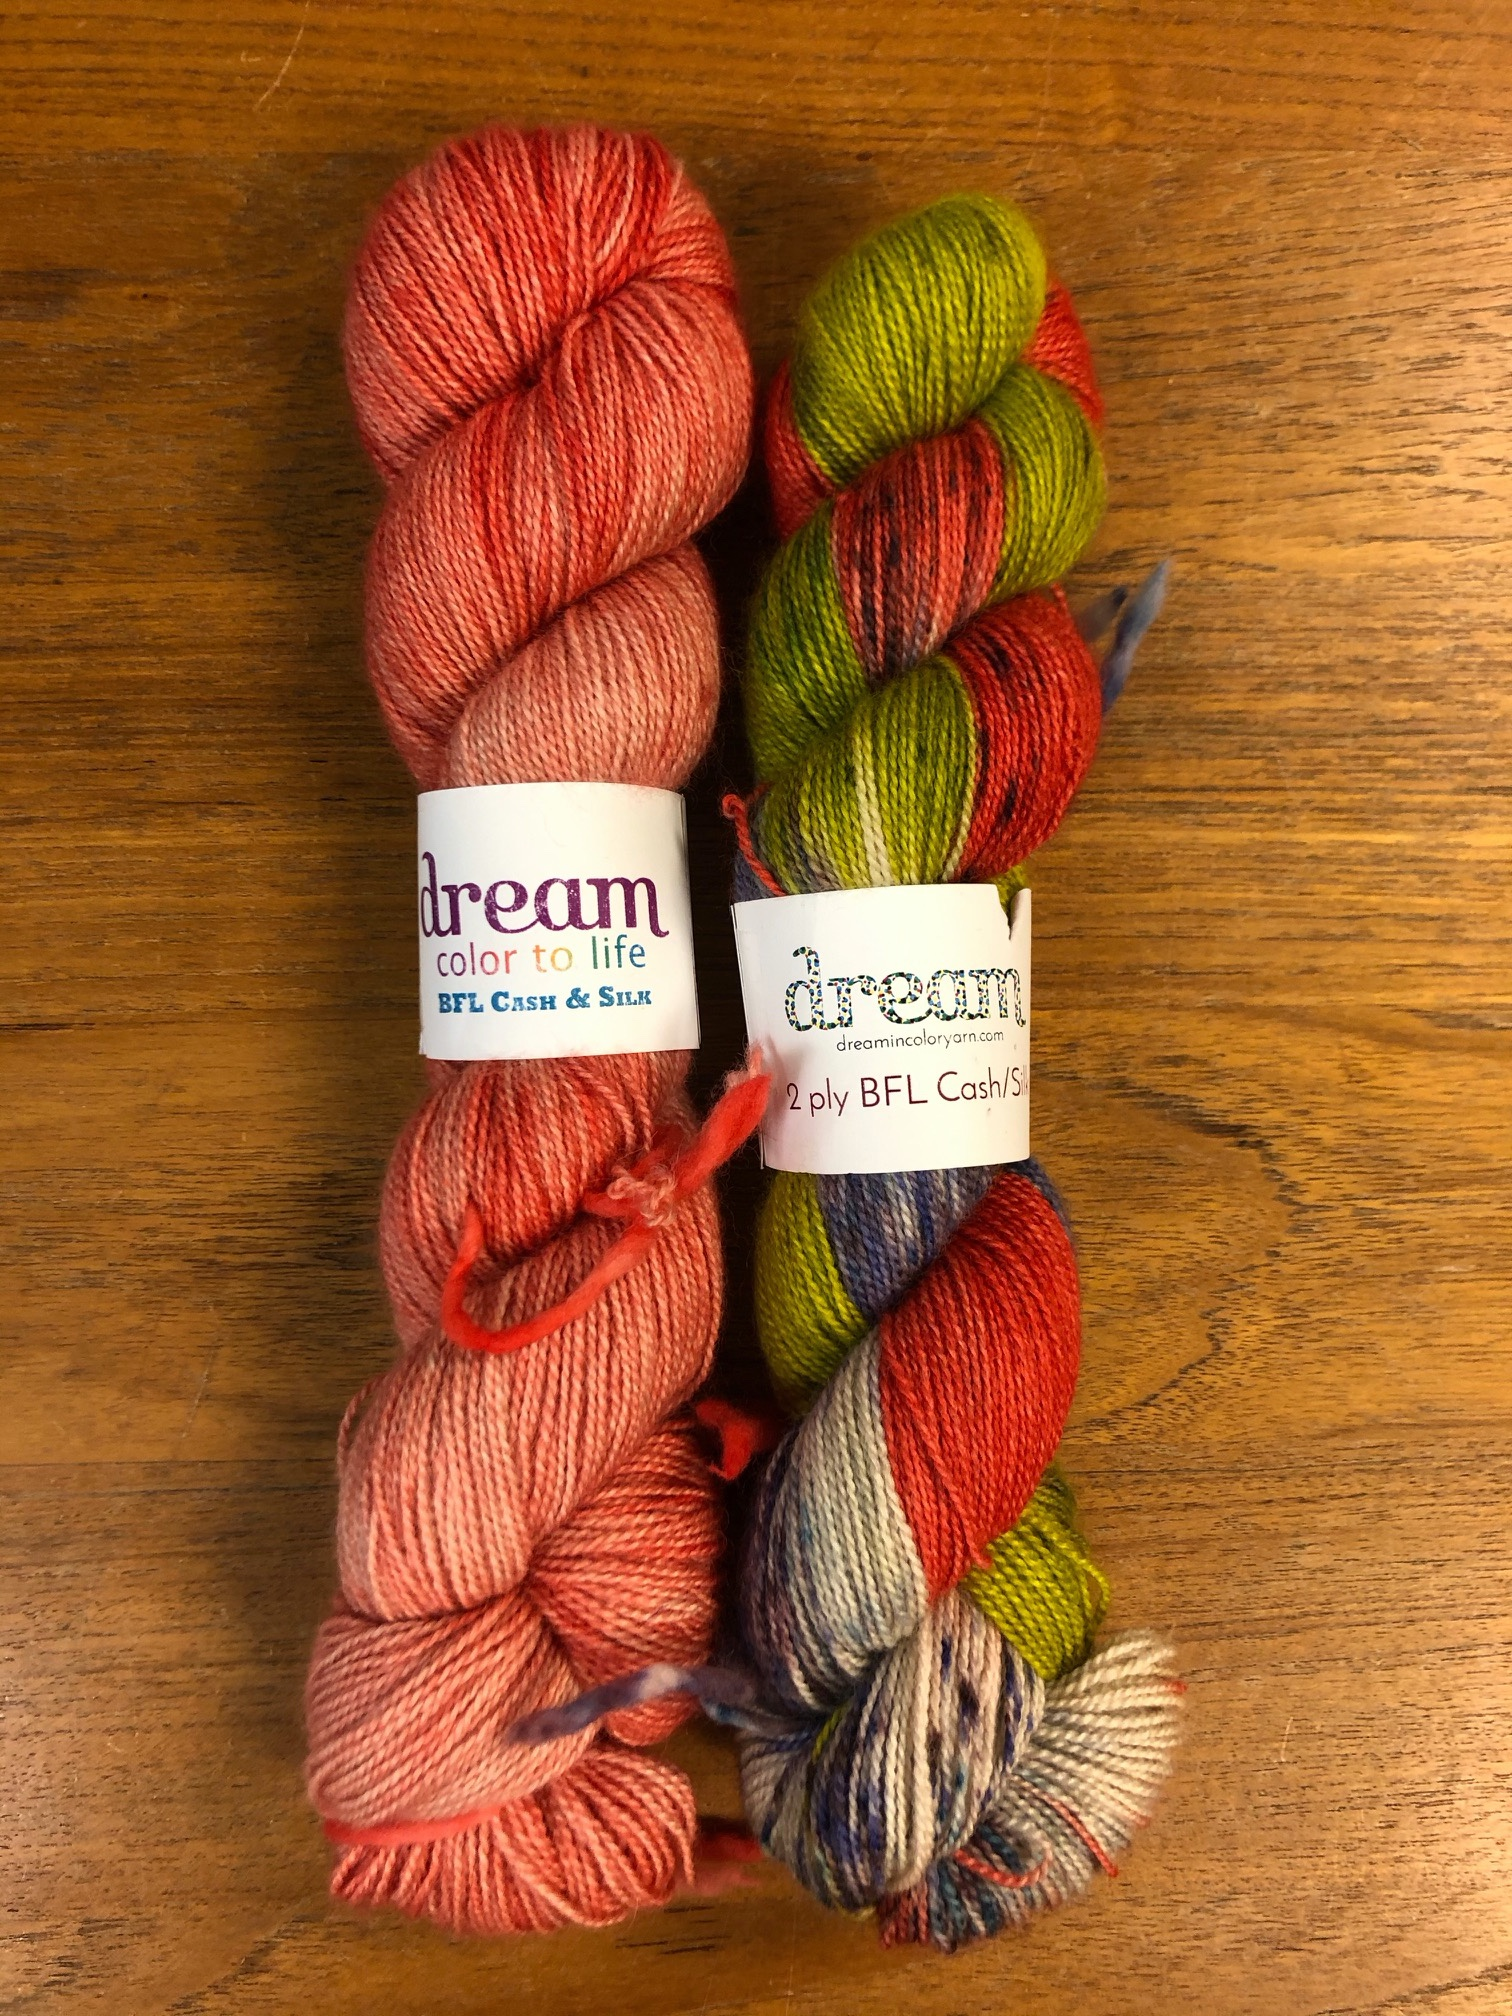 dream-in-color-2-ply-bfl-melon-bomb-and-haywire.jpg